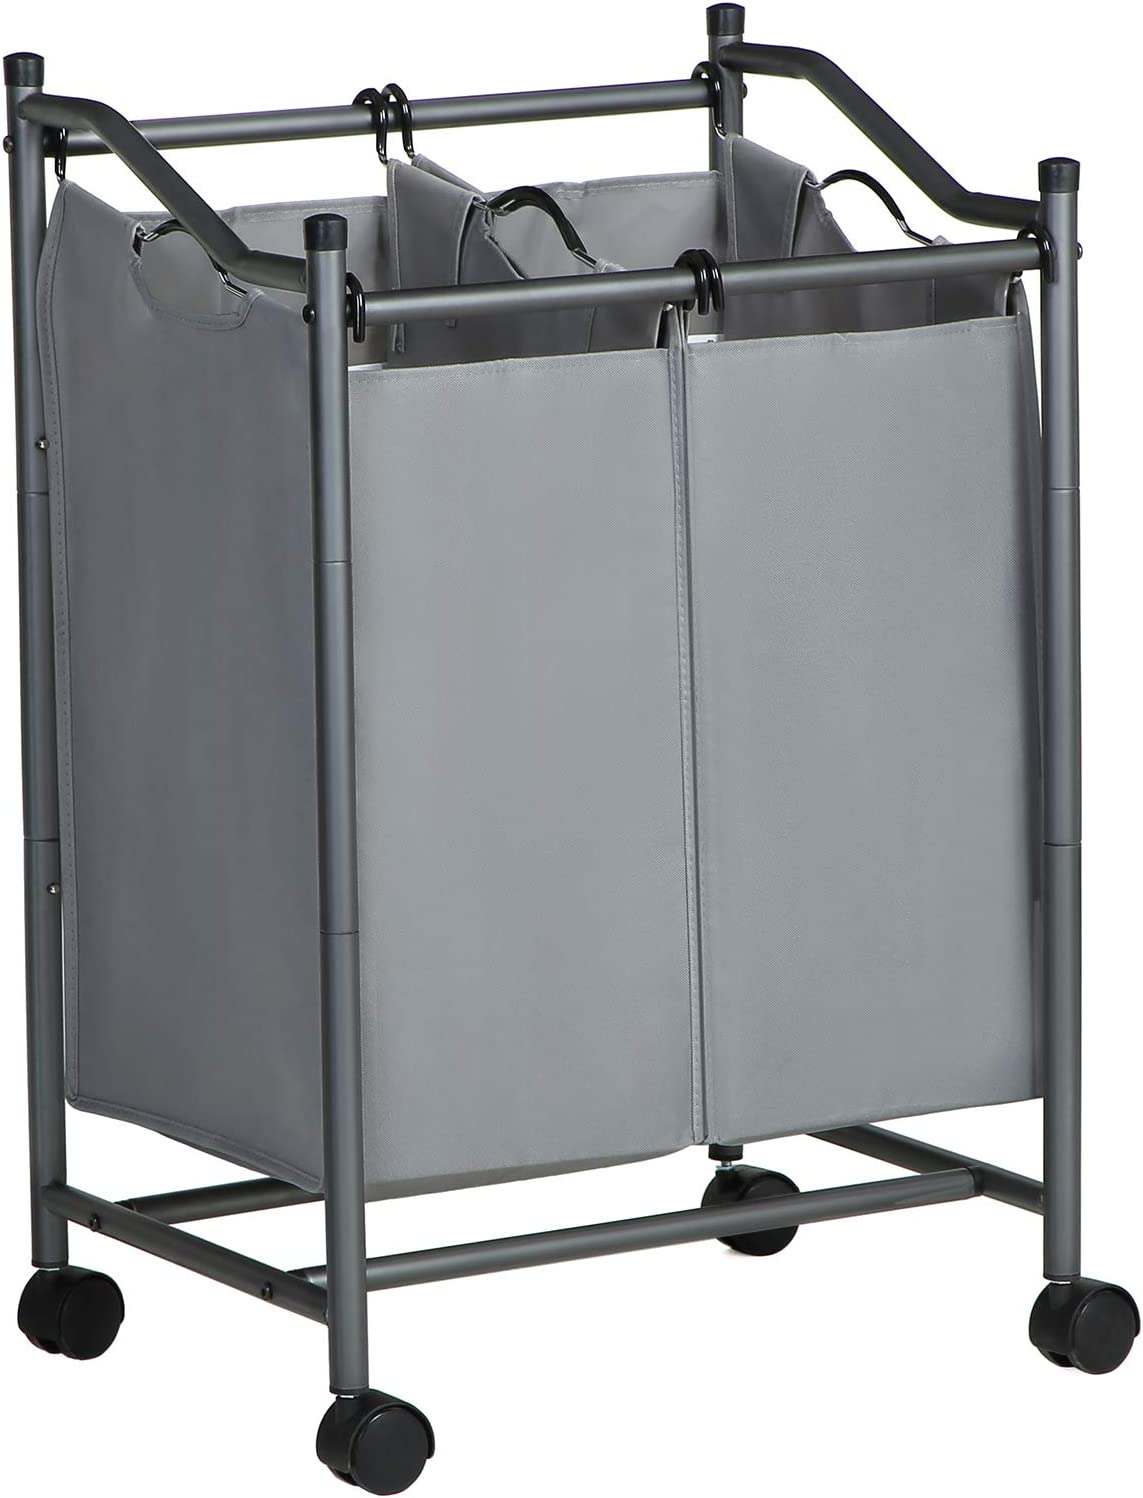 SONGMICS Rolling Laundry Sorter, Laundry Basket with 2 Removable Bags, Laundry Trolley, Toy Organiser on Wheels, Sturdy, 2 x 45L, Grey LSF002GS Gray